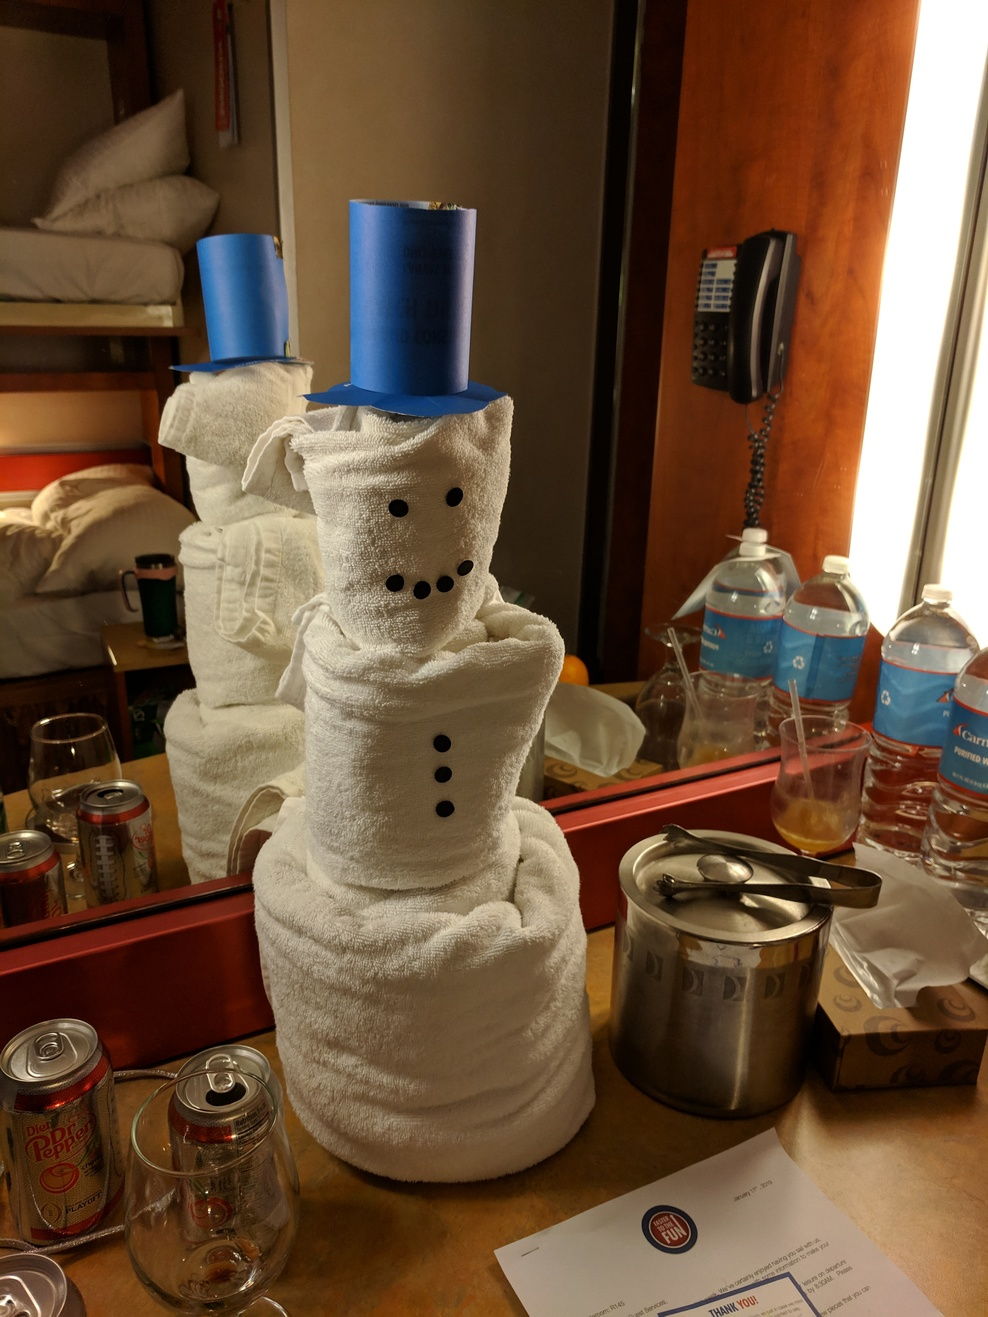 This is the towel SNOWMAN we made for our steward as we came back home to f